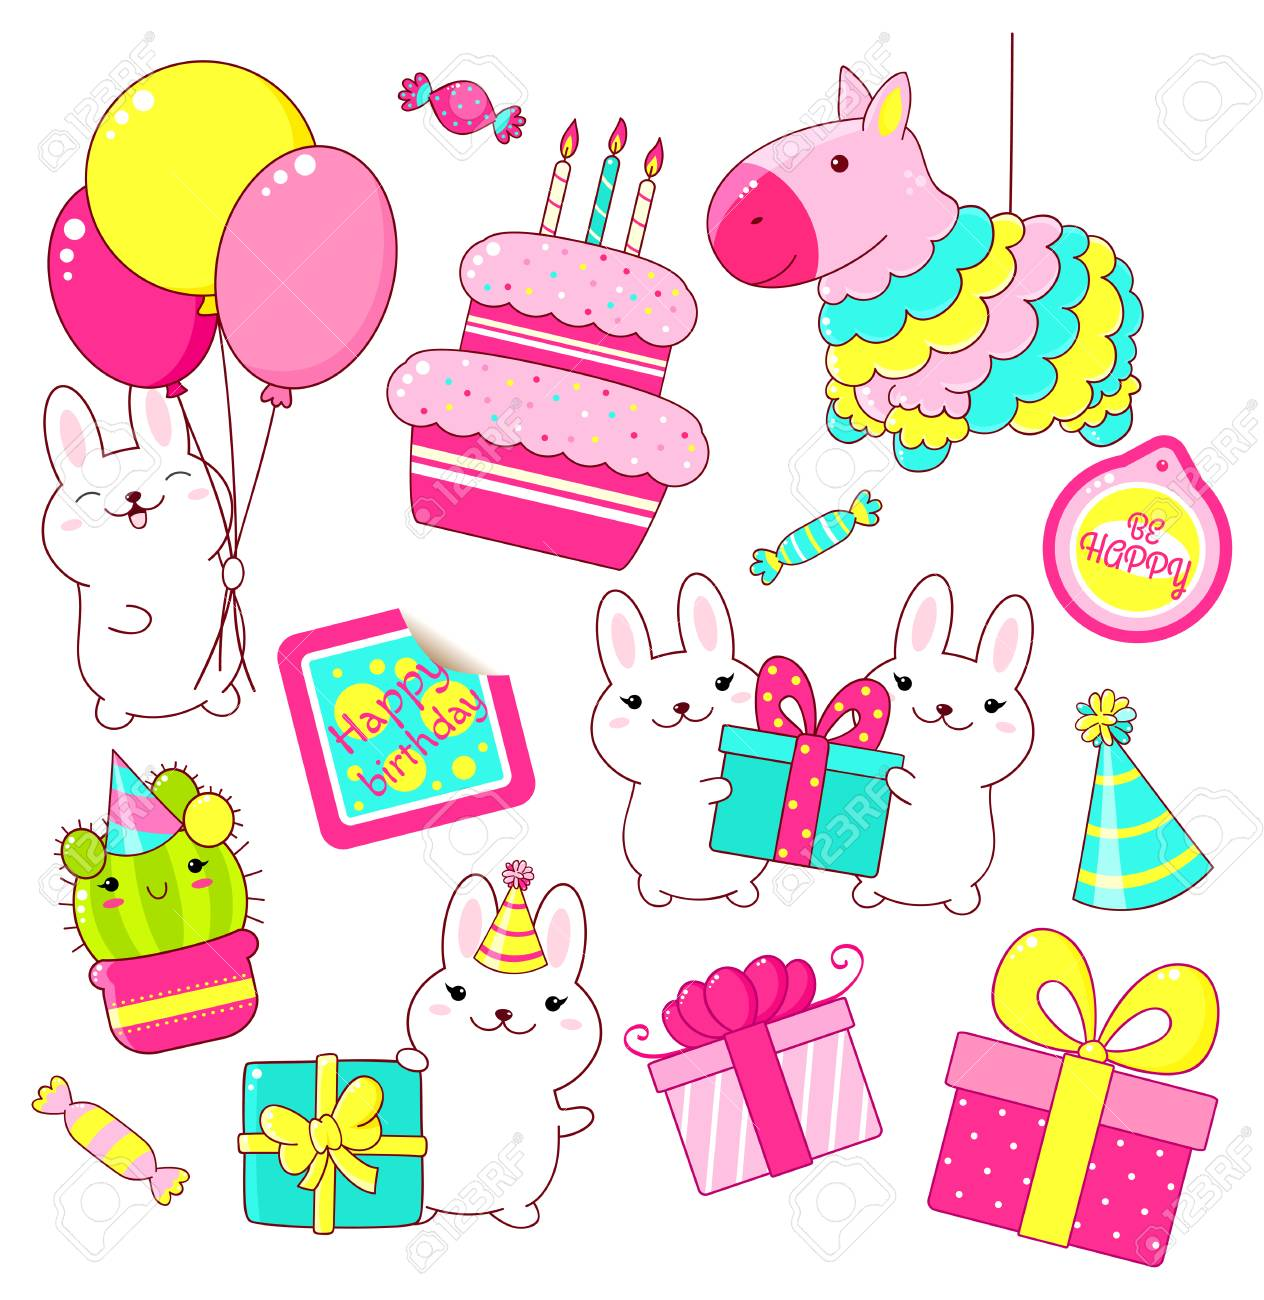 Set Of Cute Birthday Party Icons In Kawaii Style Rabbit With Gift And Balloons Cake Candles Pinata Stack Gifts Candy Sticker